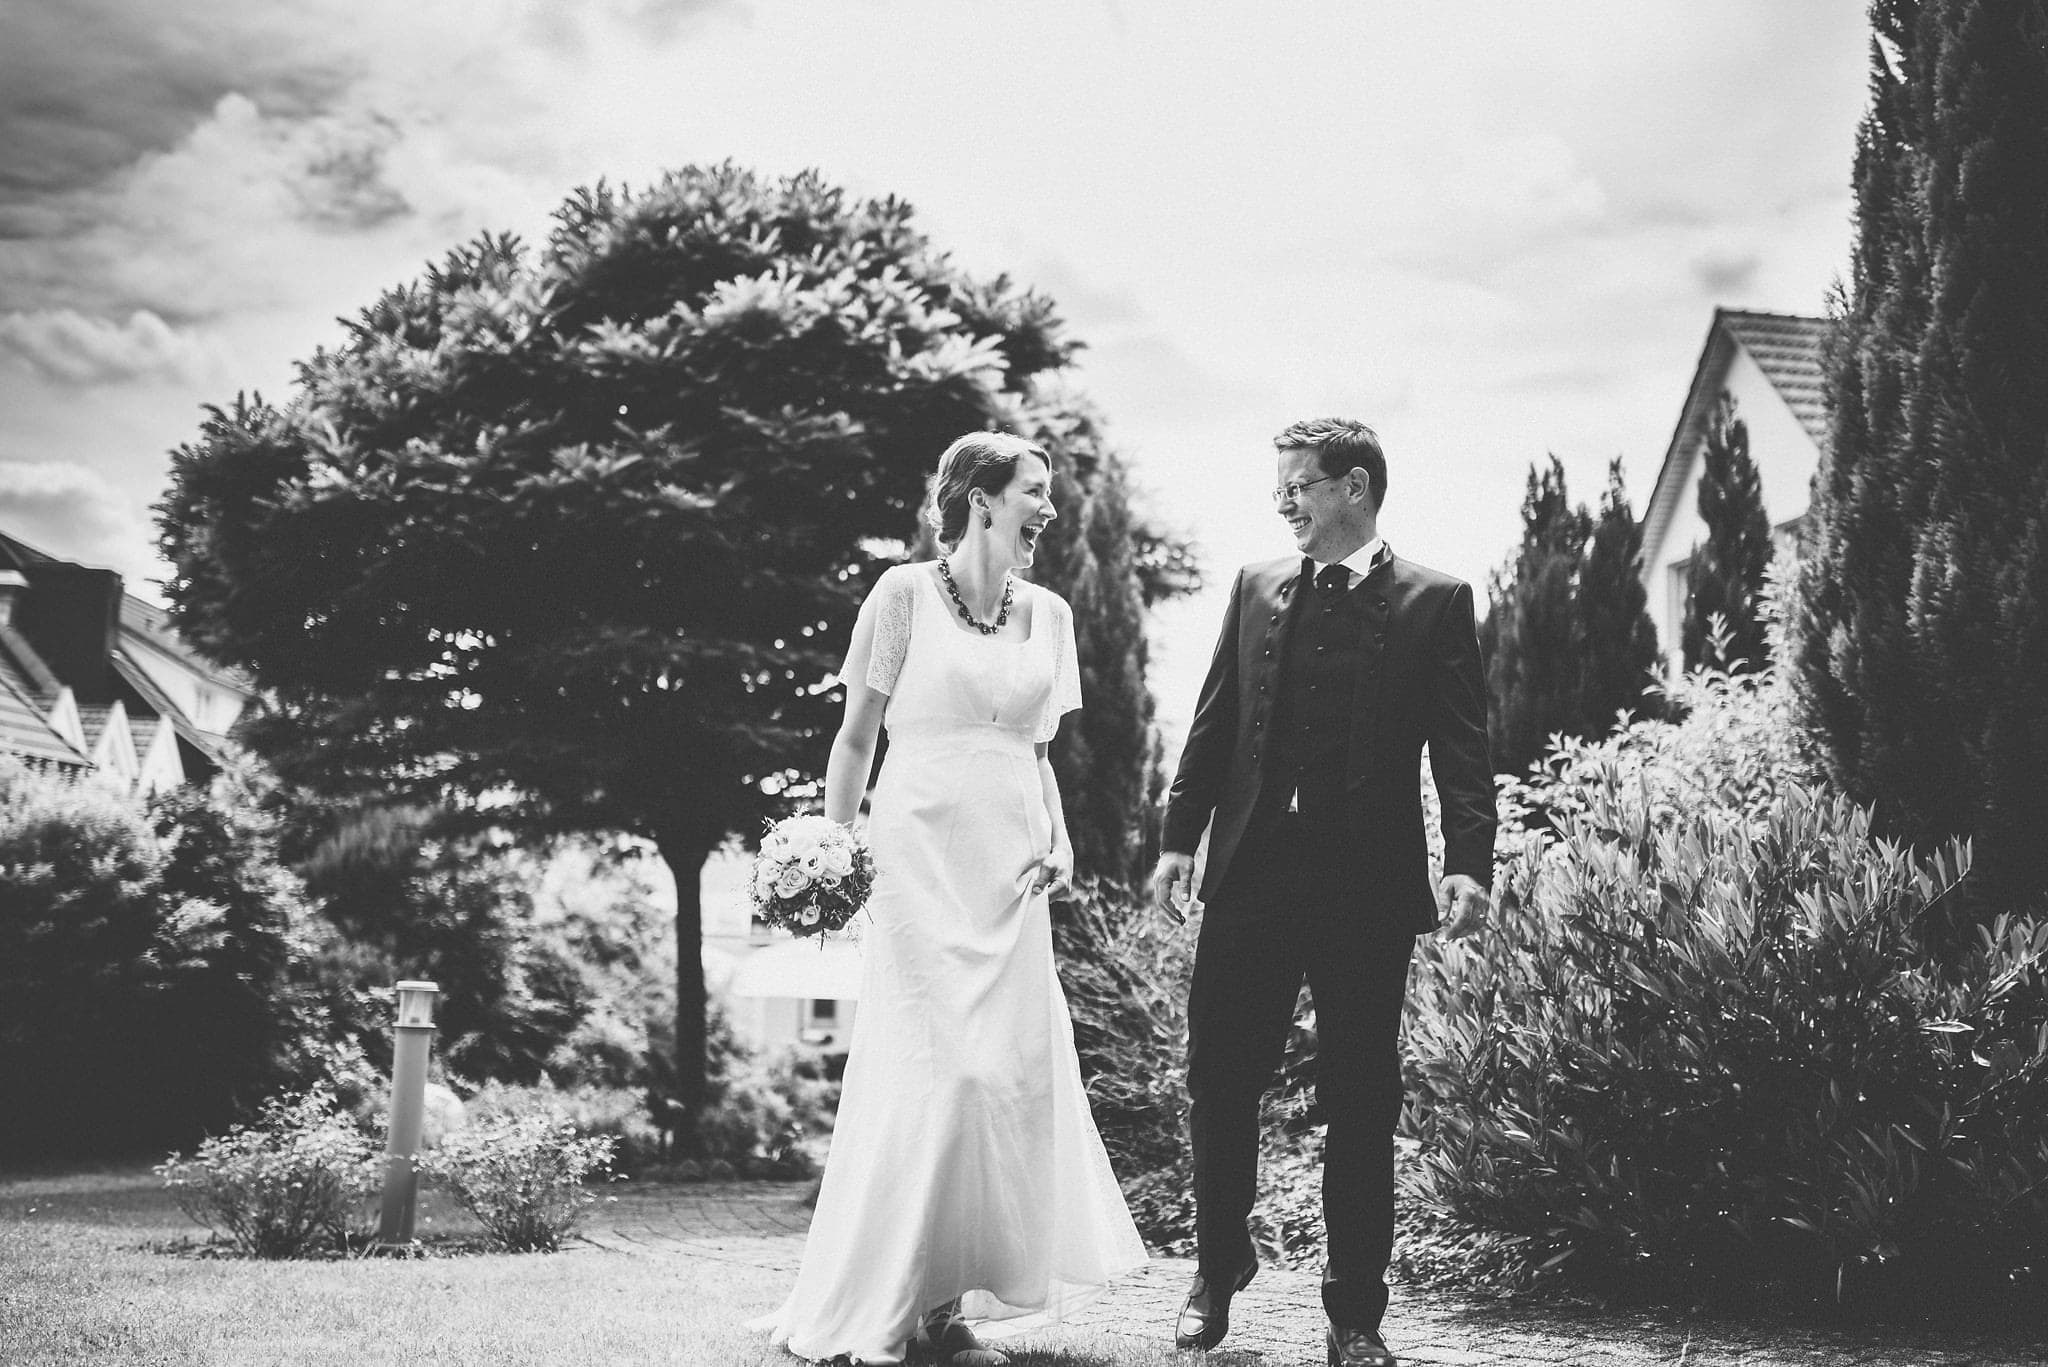 Bride And Groom Walking Laughing At Their Heartfelt Destination Wedding In Germany Maria Ia